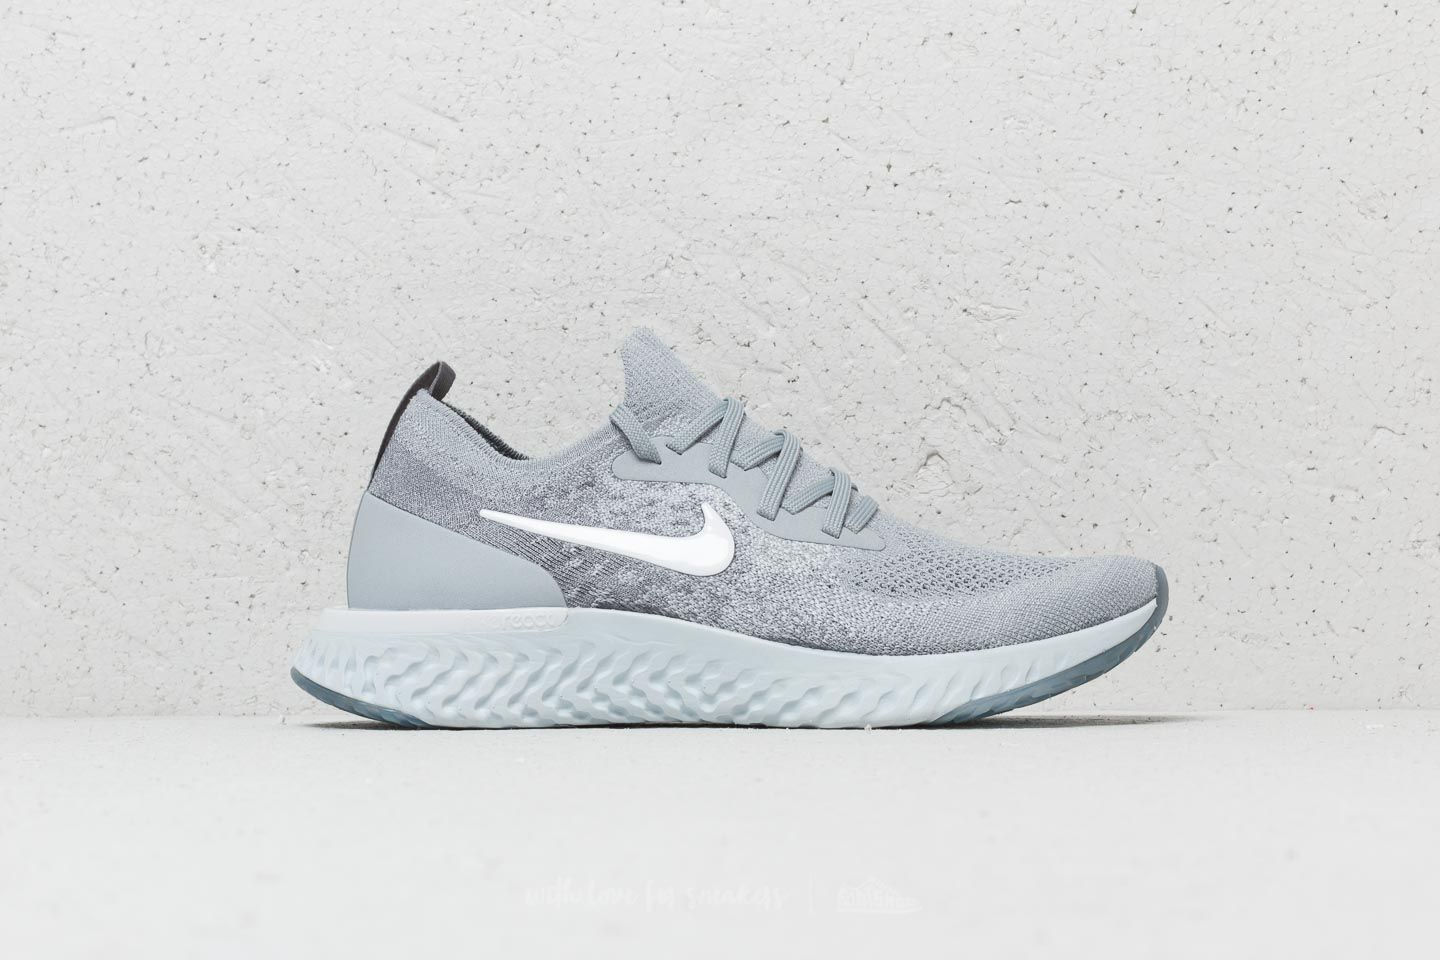 Nike Epic React Flyknit GS Nike Epic React Flyknit (GS) Wolf Grey/ White-Cool Grey | Footshop